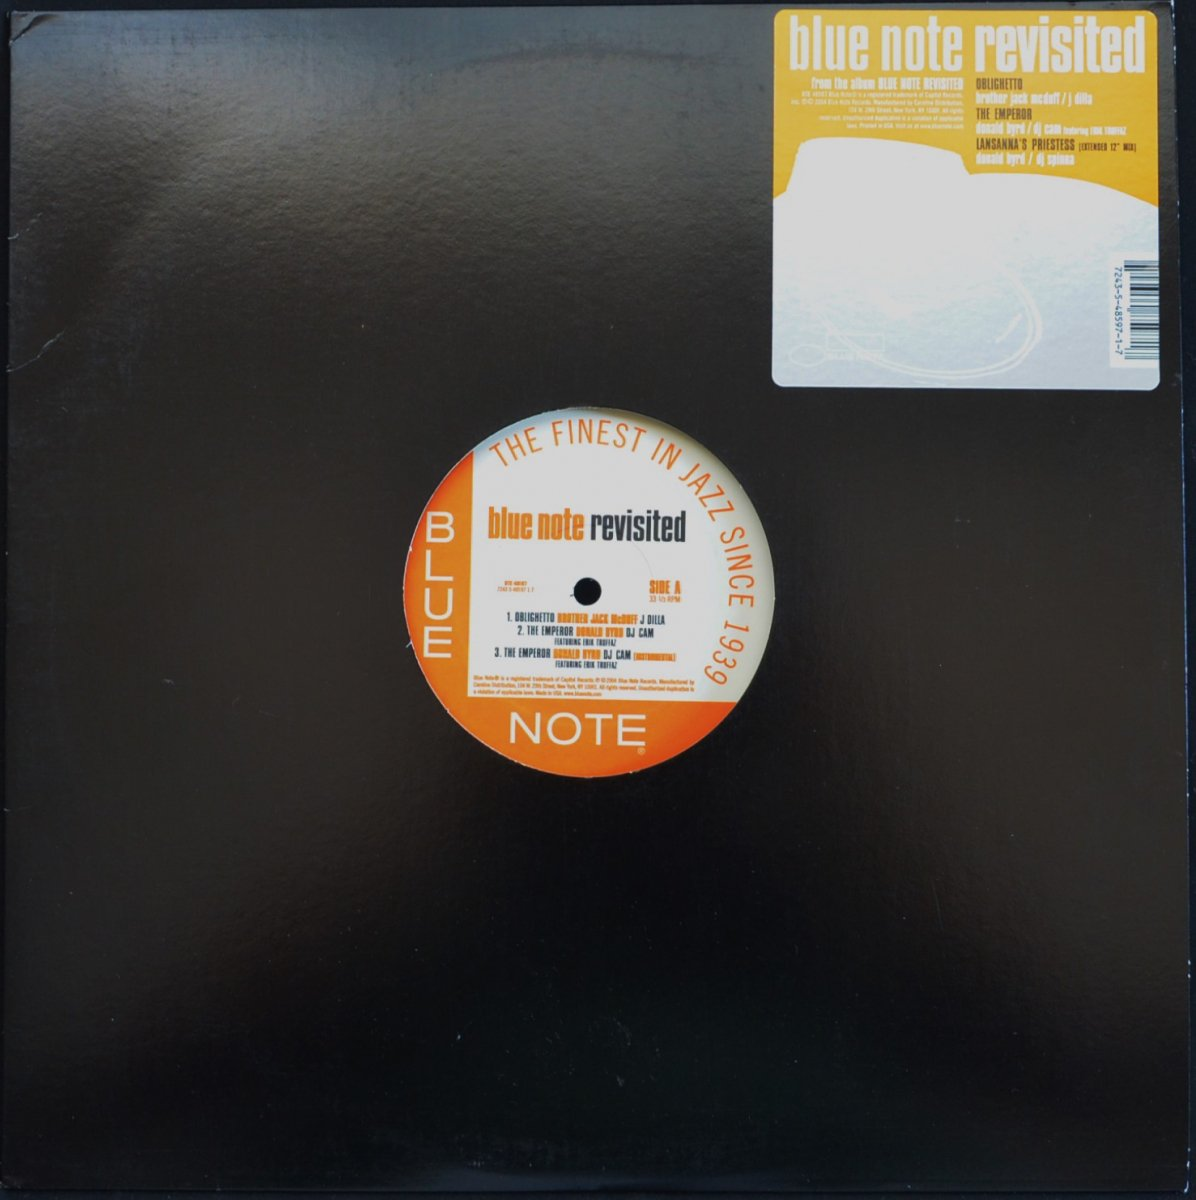 V.A.(BROTHER JACK MCDUFF / J DILLA...) / OBLIGHETTO (BLUE NOTE REVISITED) (12